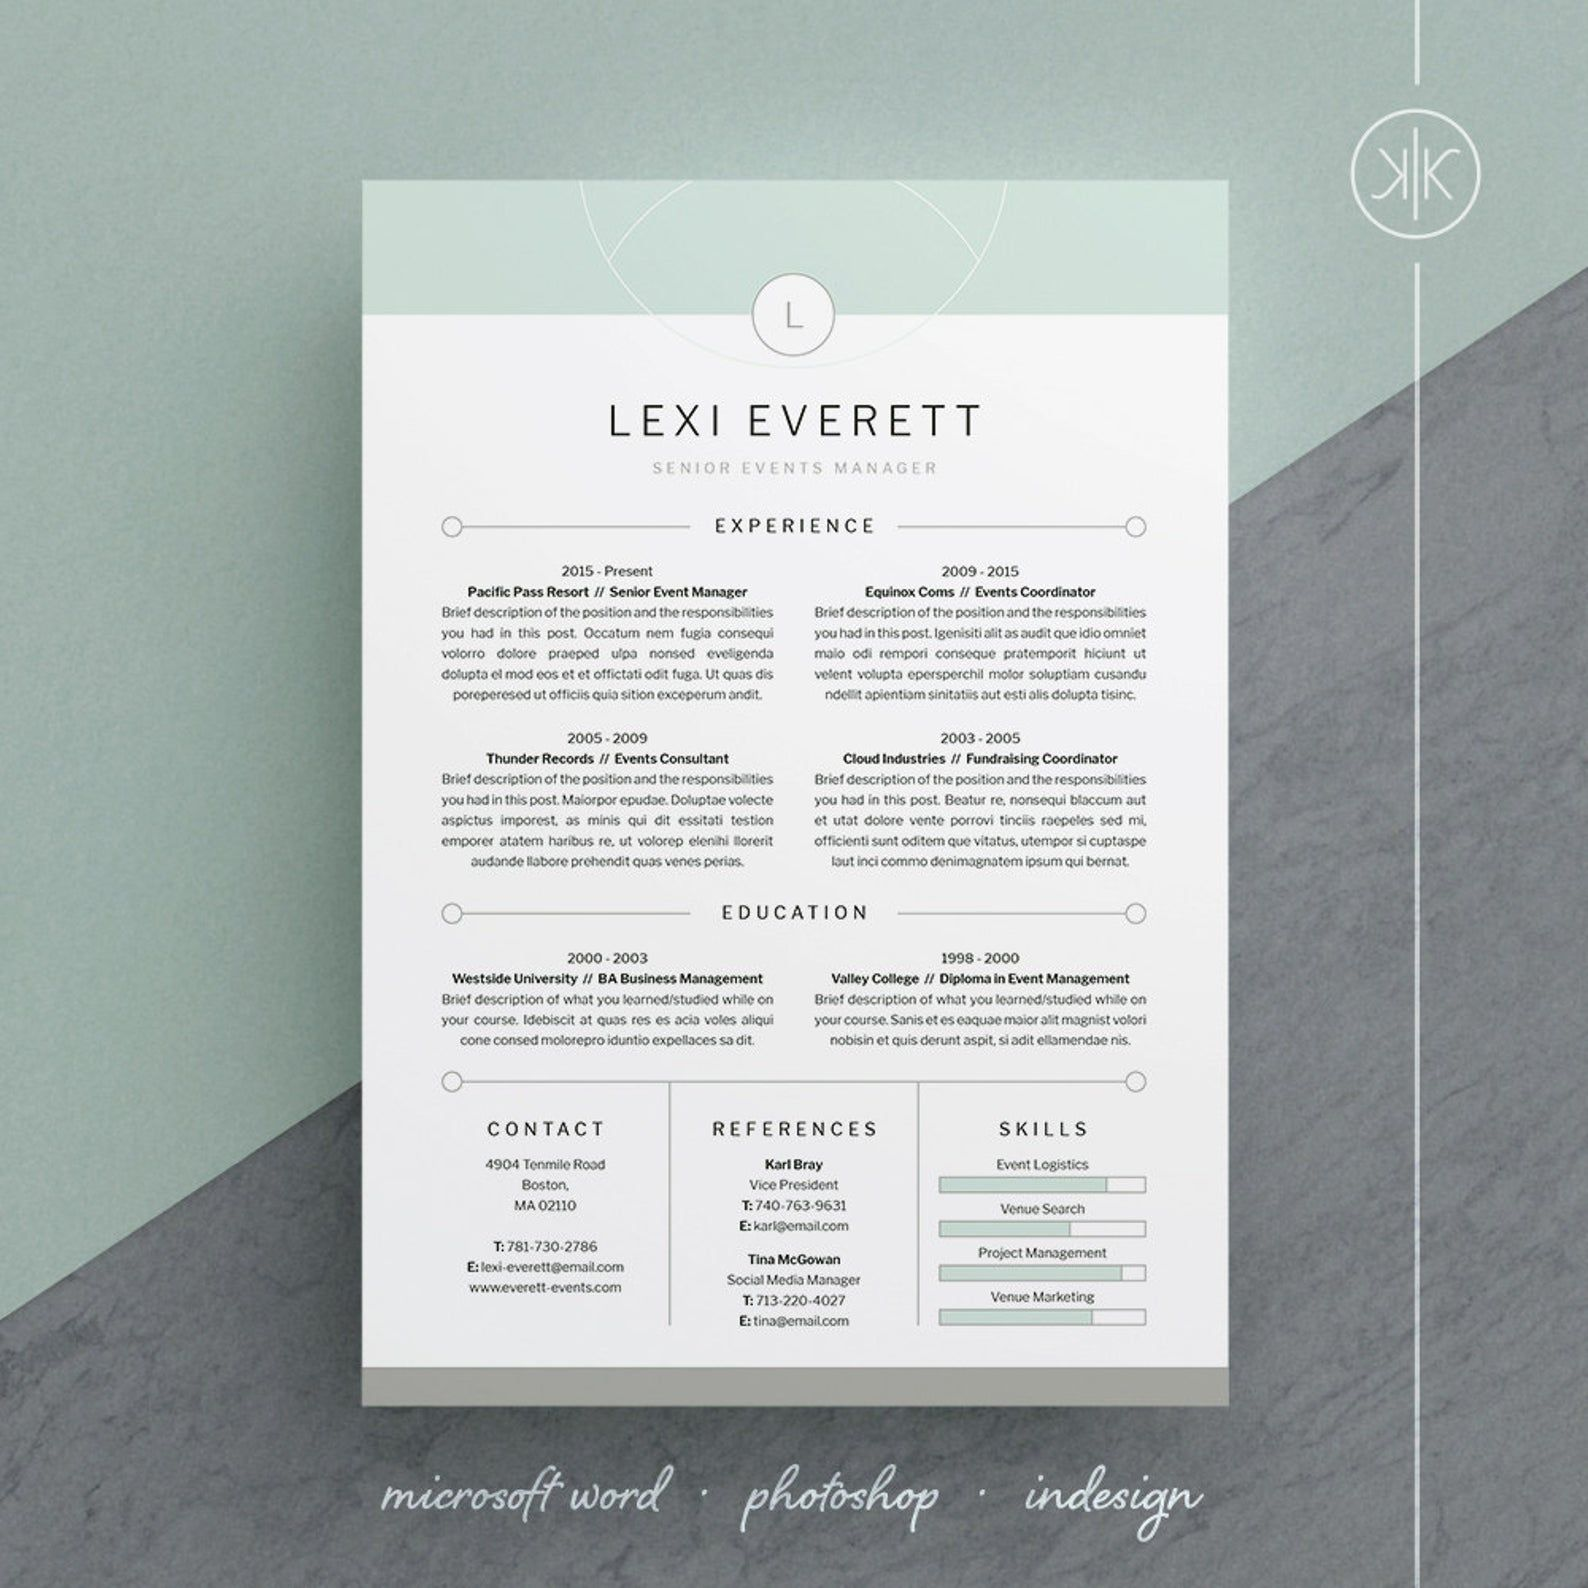 Lexi Resume Cv Template Word Photoshop Indesign Etsy Resume Design Free Resume Design Cv Template Word